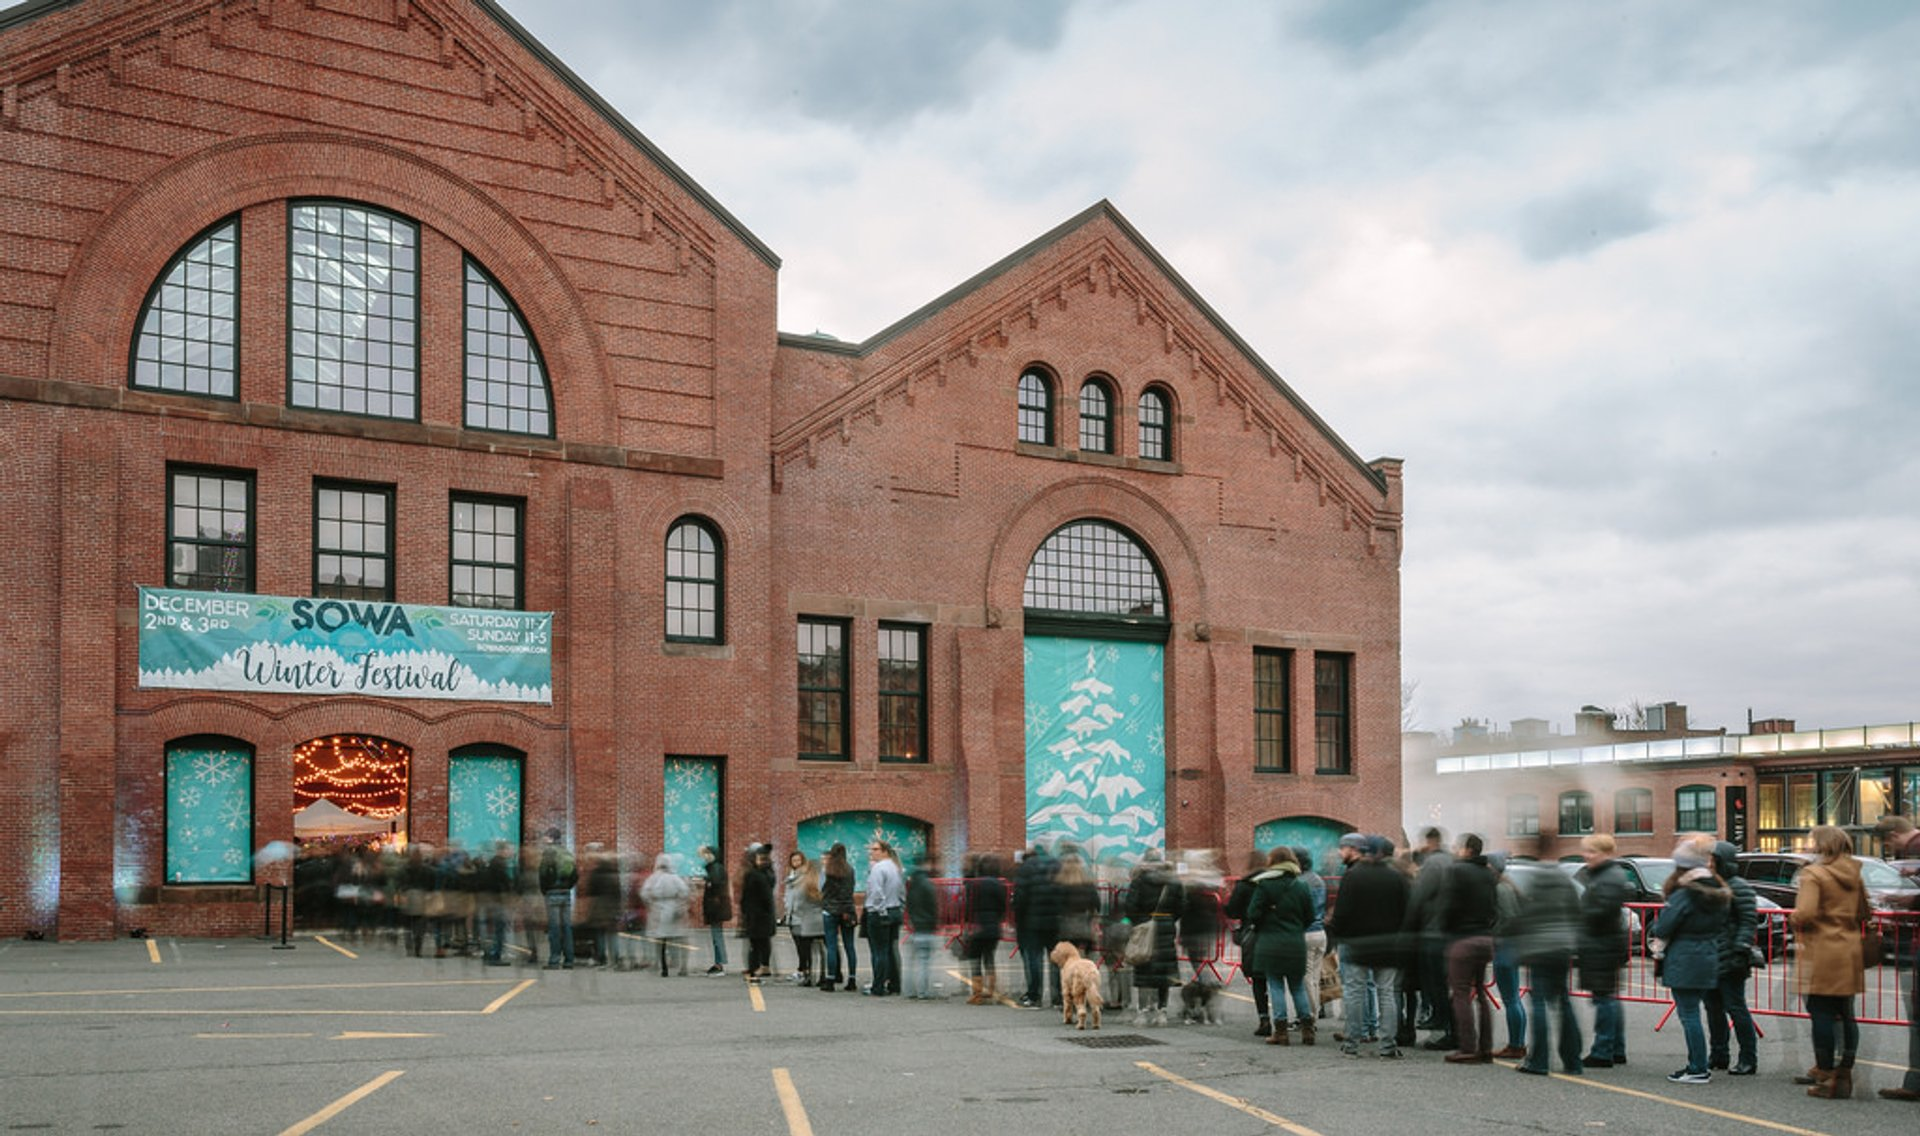 Best time to see SoWa Winter Festival 2020